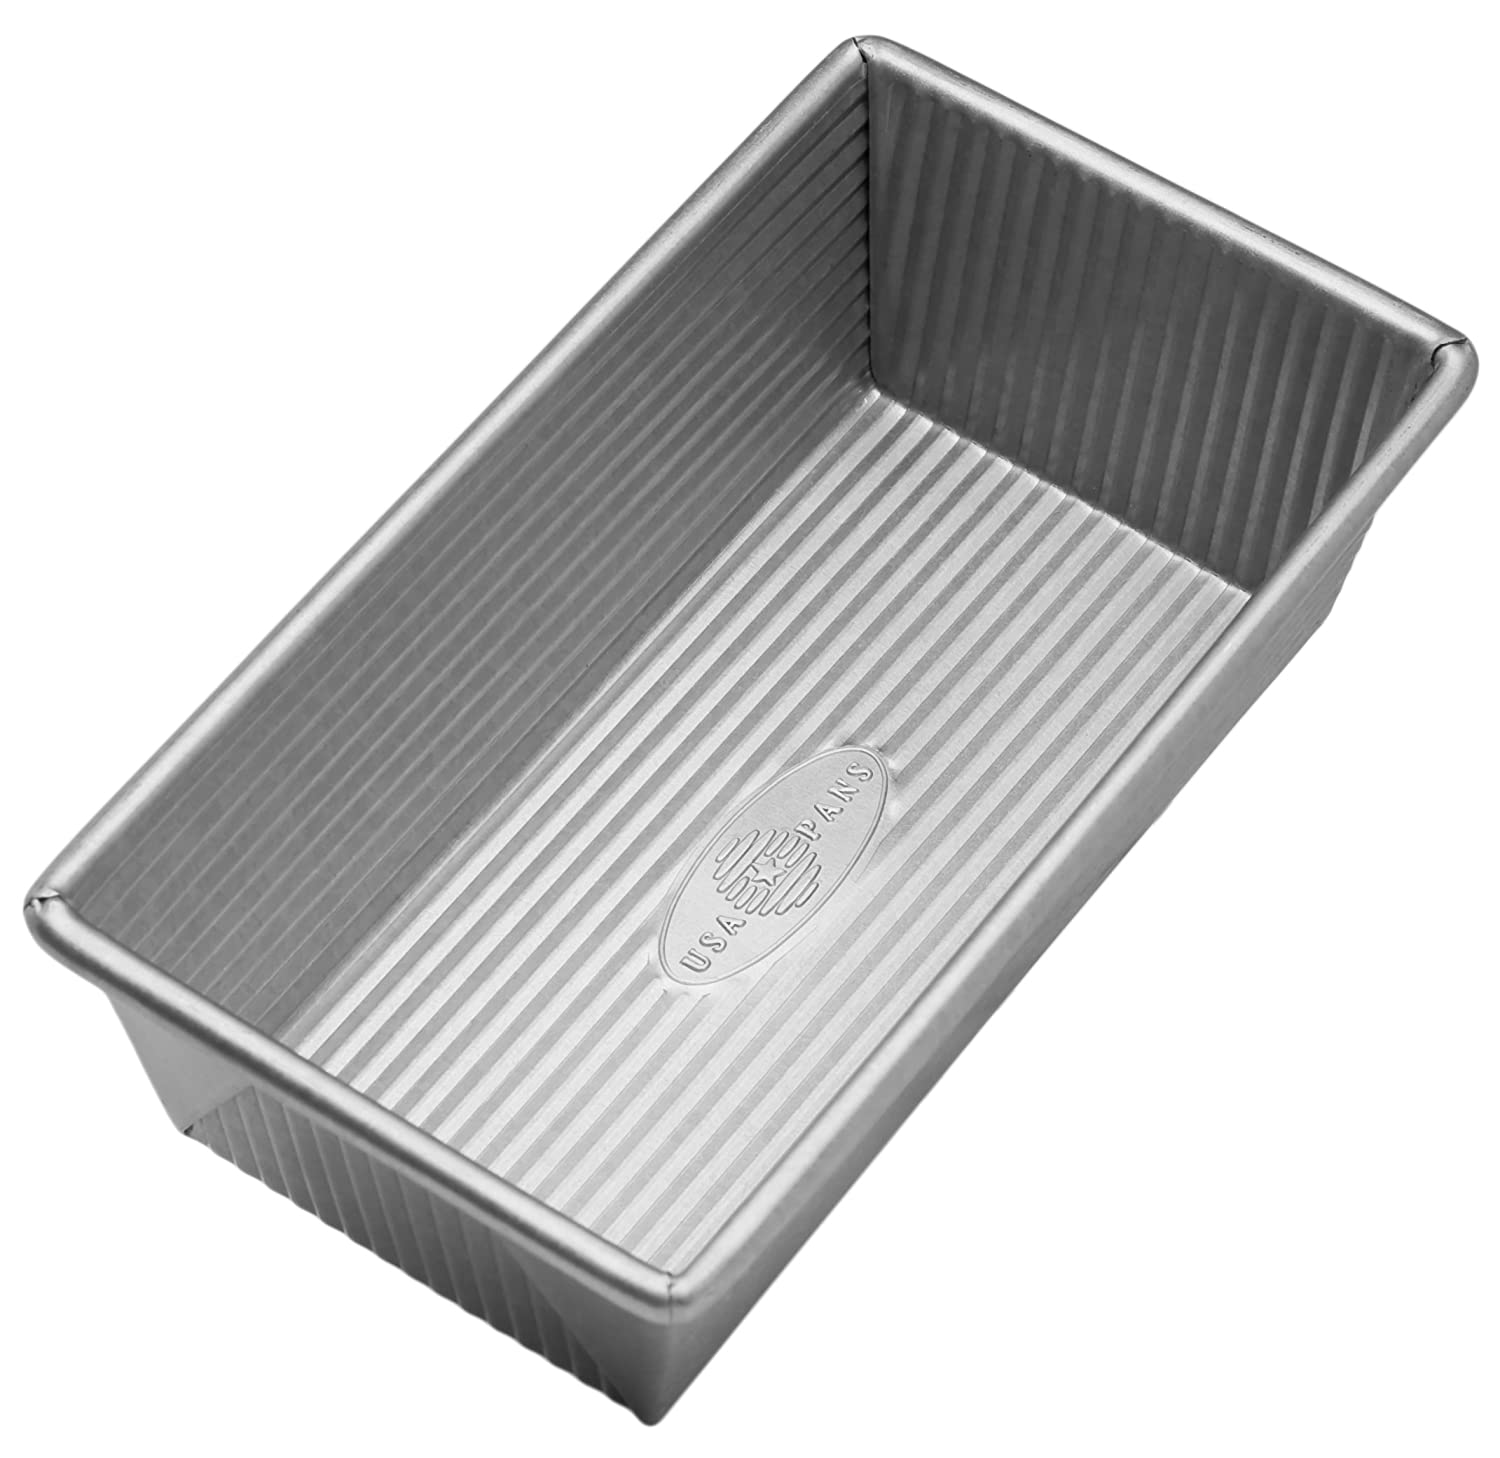 USA Pan Bakeware Aluminized Steel Loaf Pan 1140LF 8.5 x 4.5 x 3 Inch Small, Silver